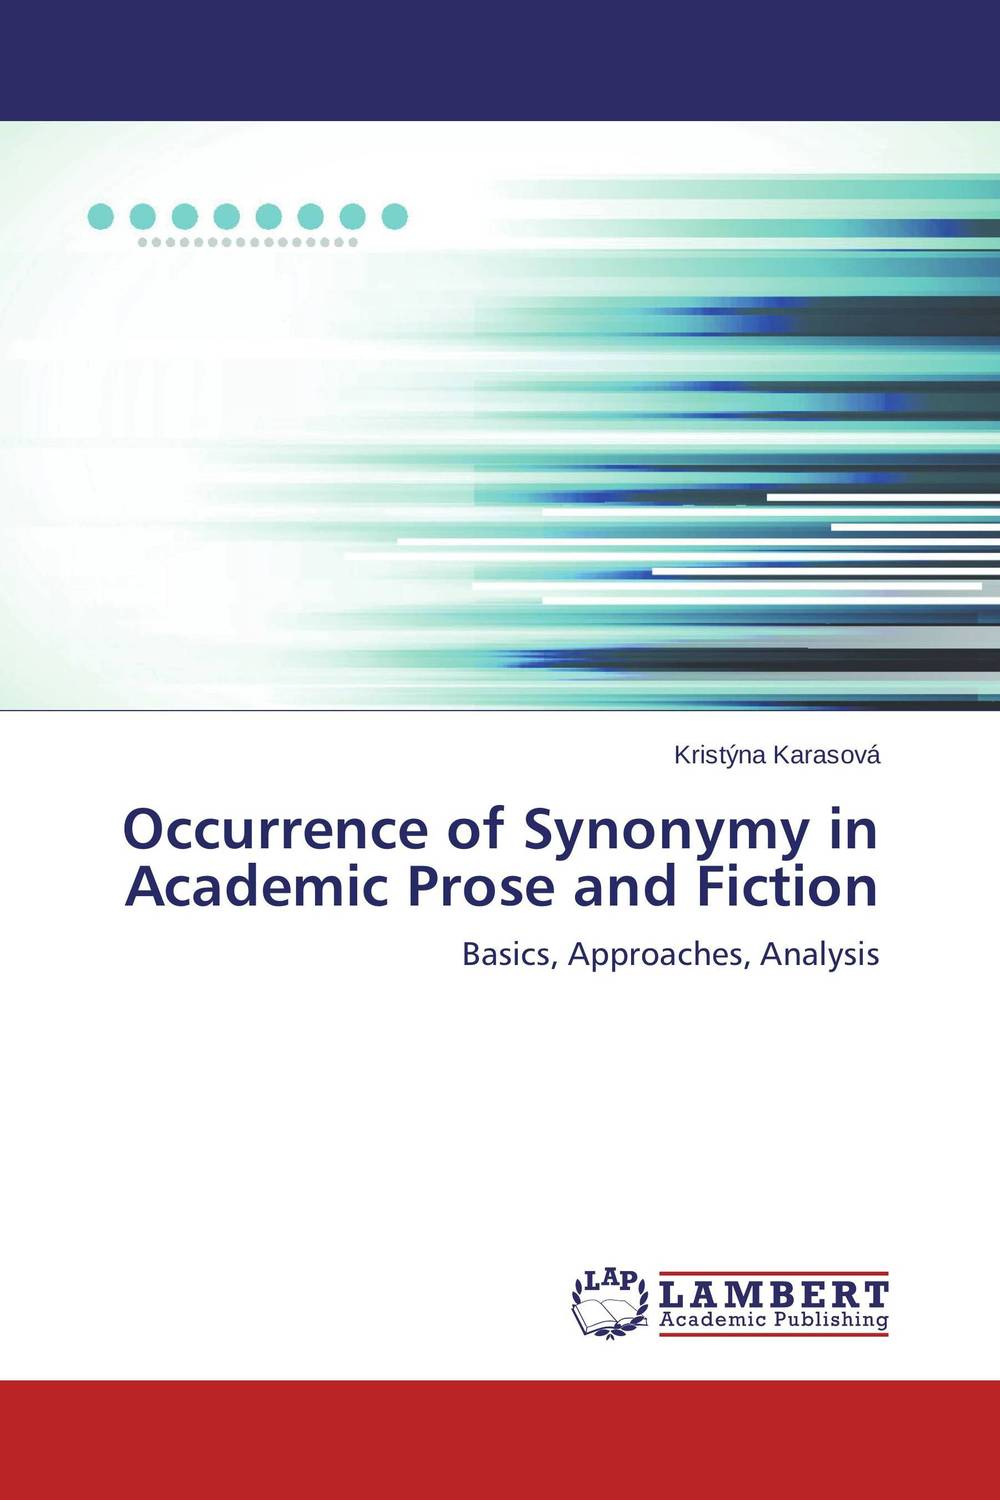 Occurrence of Synonymy in Academic Prose and Fiction внутри topic